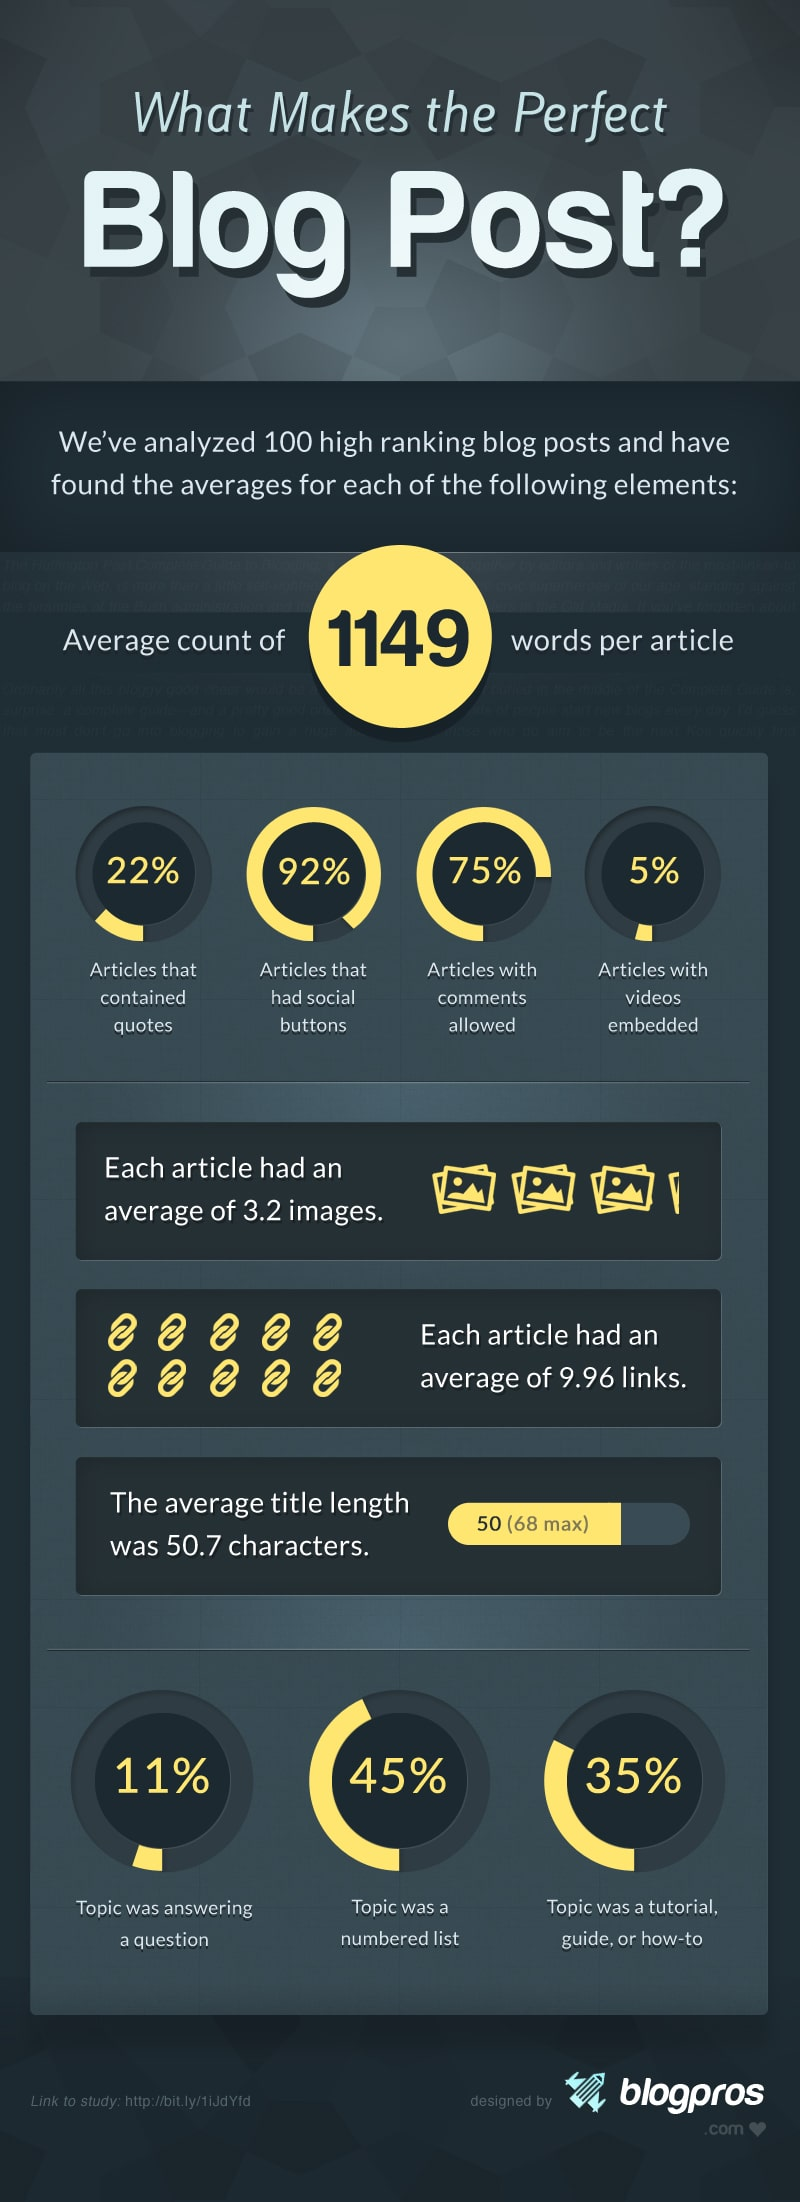 The Perfect Blog Post Infographic